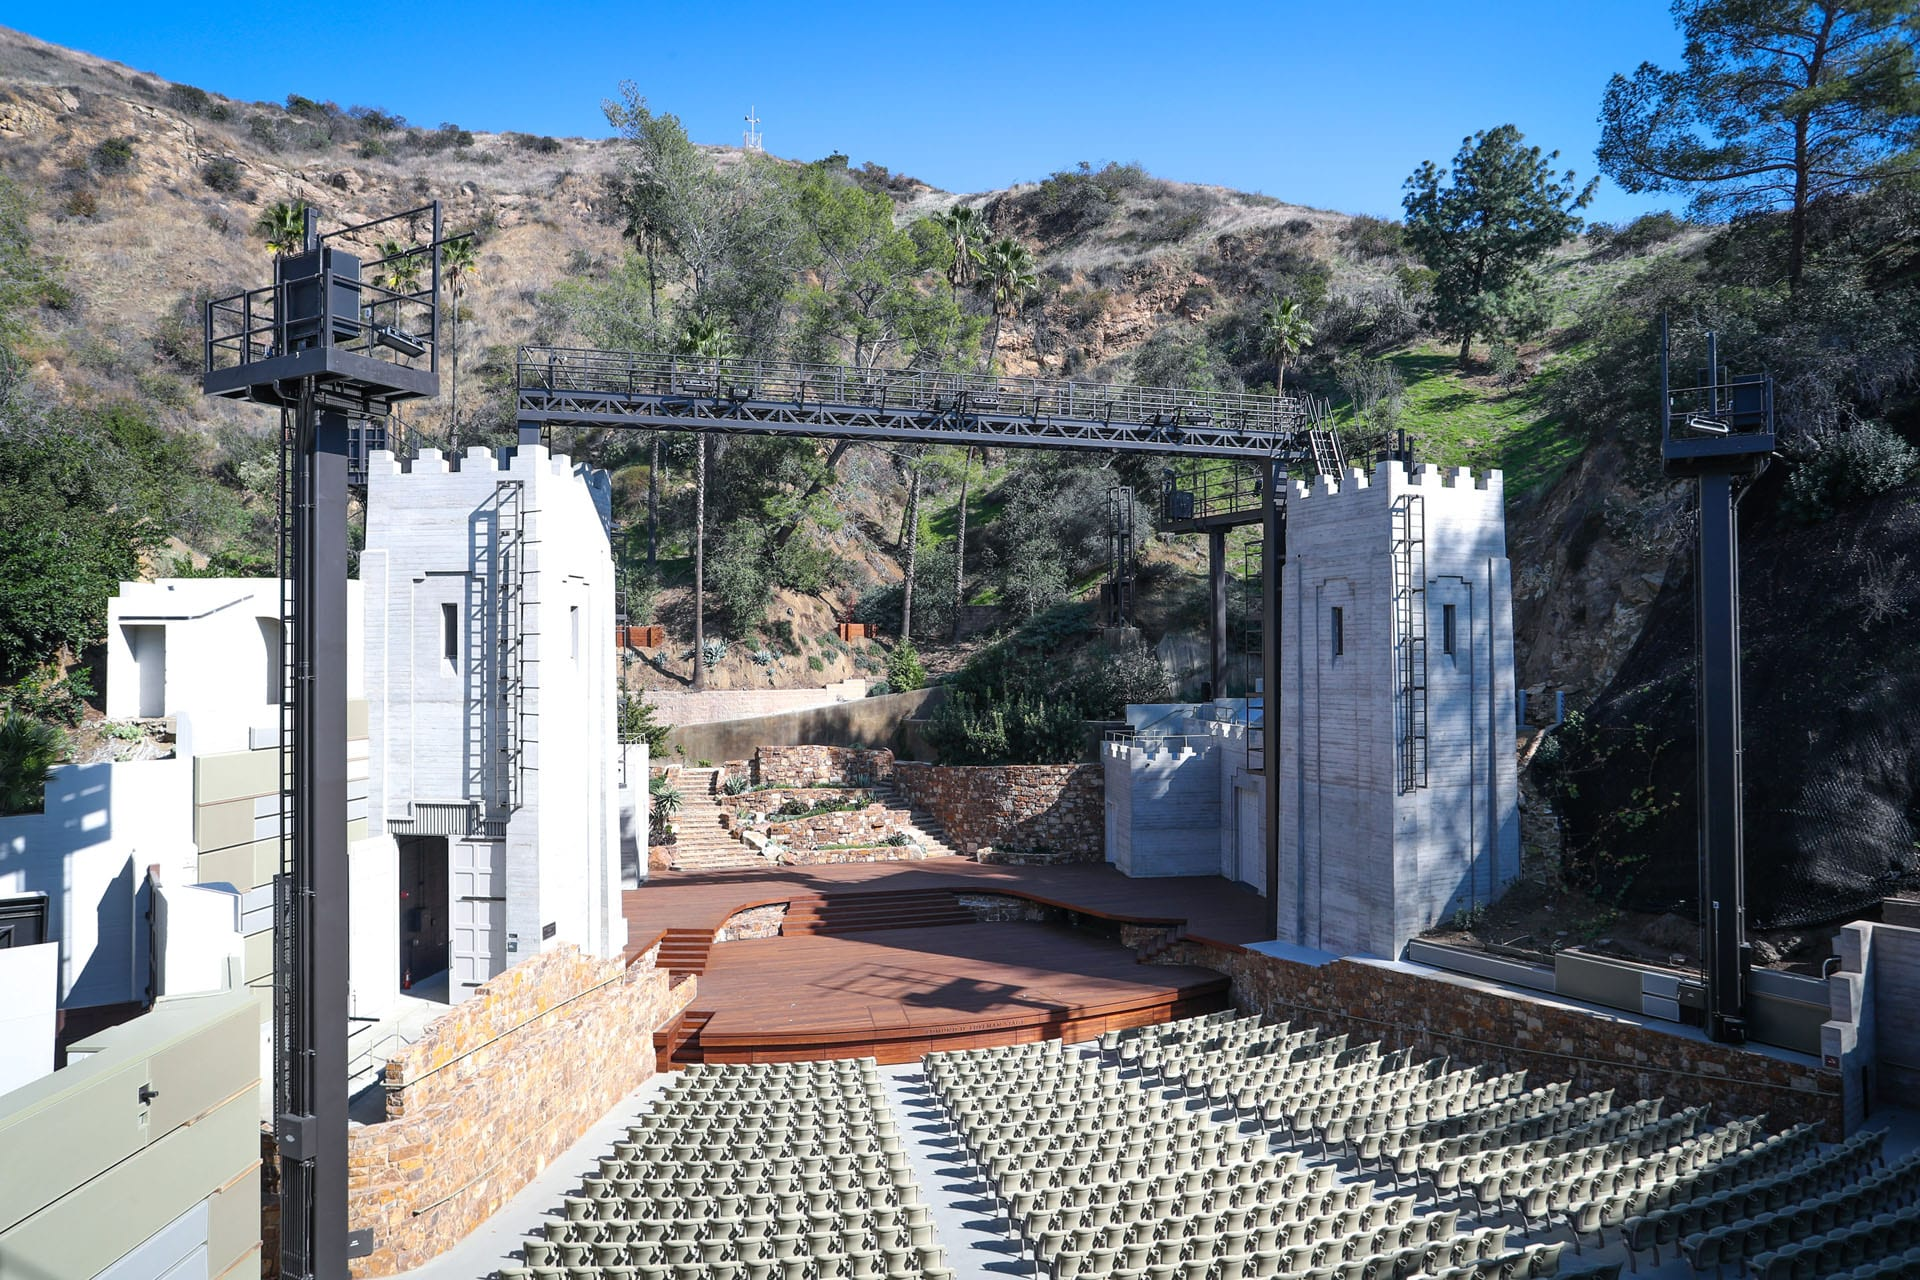 View of amphitheater from up high